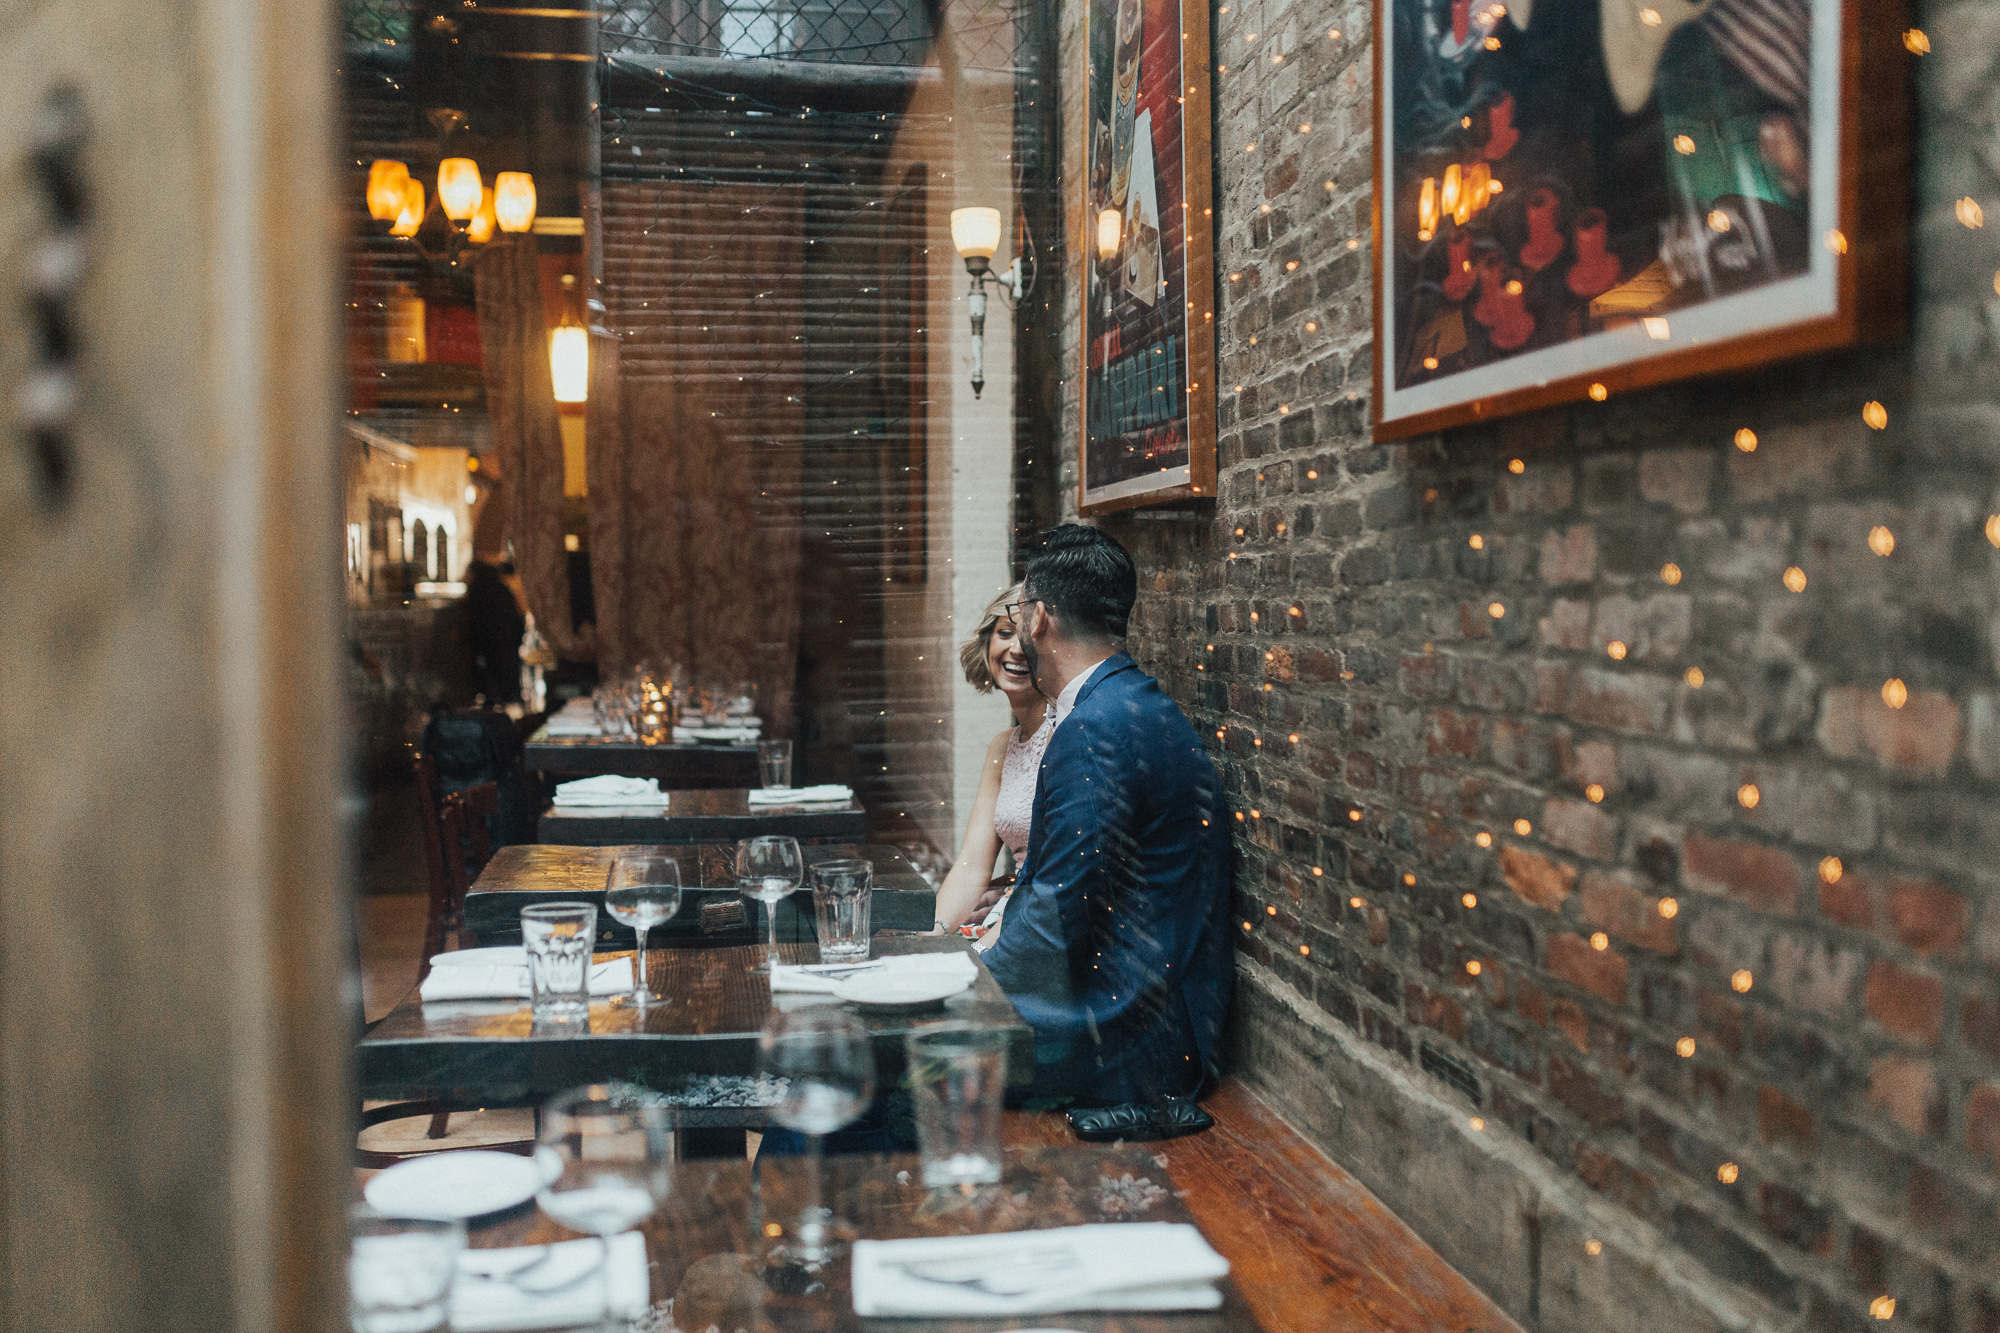 brooklyn_nyc_engagement_photography-6-of-83.jpg